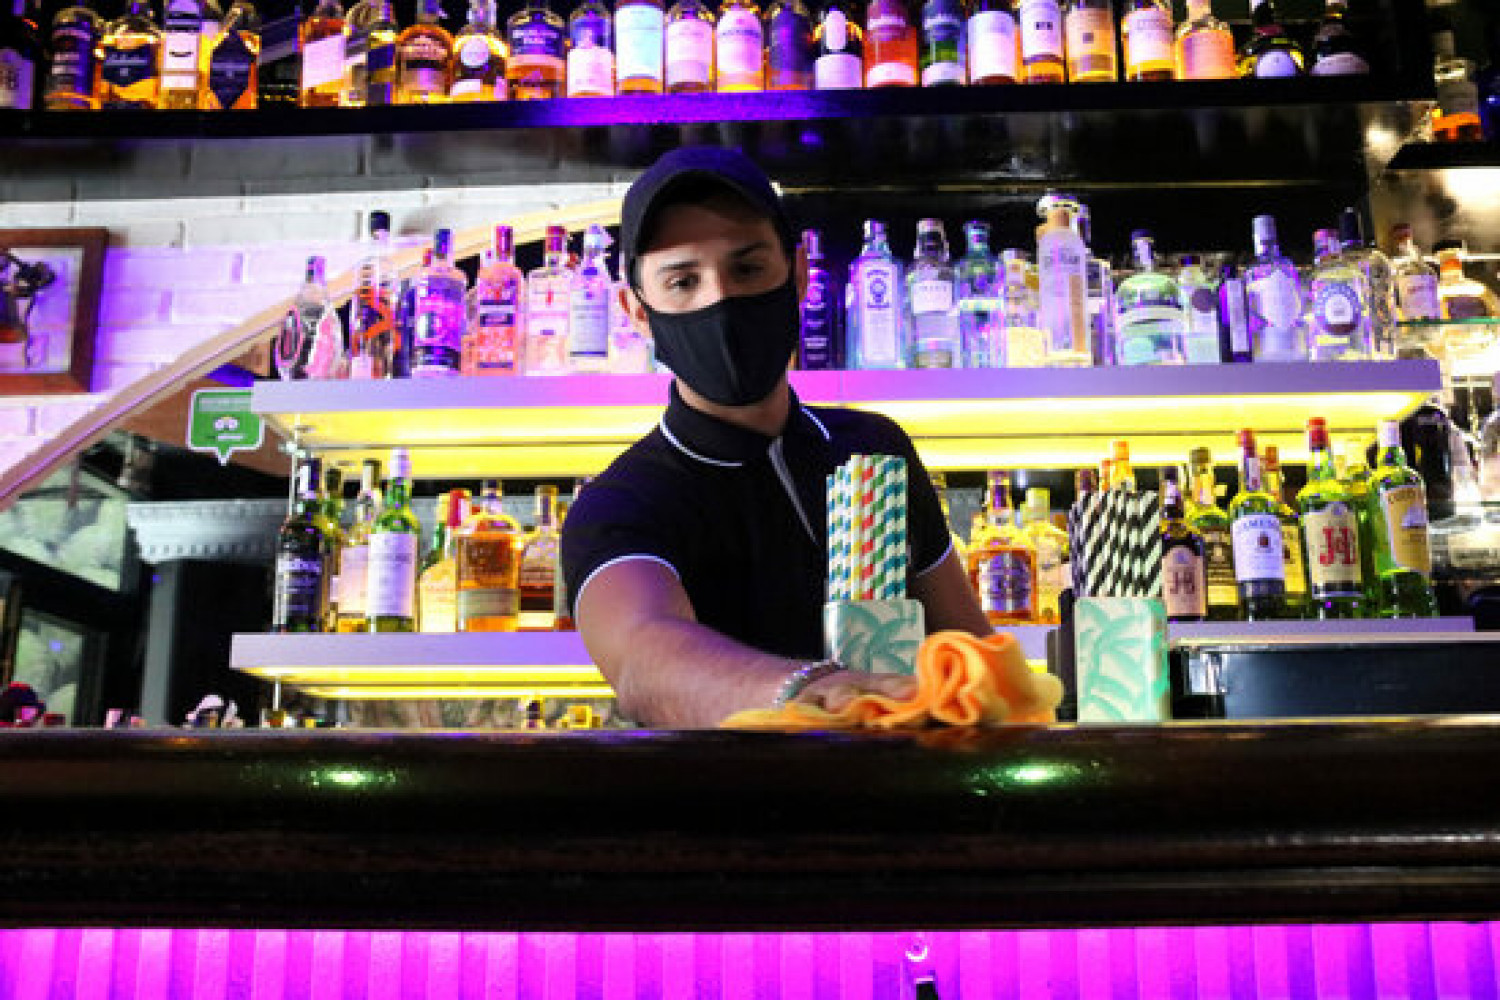 A member of staff in one of the Sitges nightclubs participating in a trial reopening, May 10, 2021 (by Gemma Sánchez)